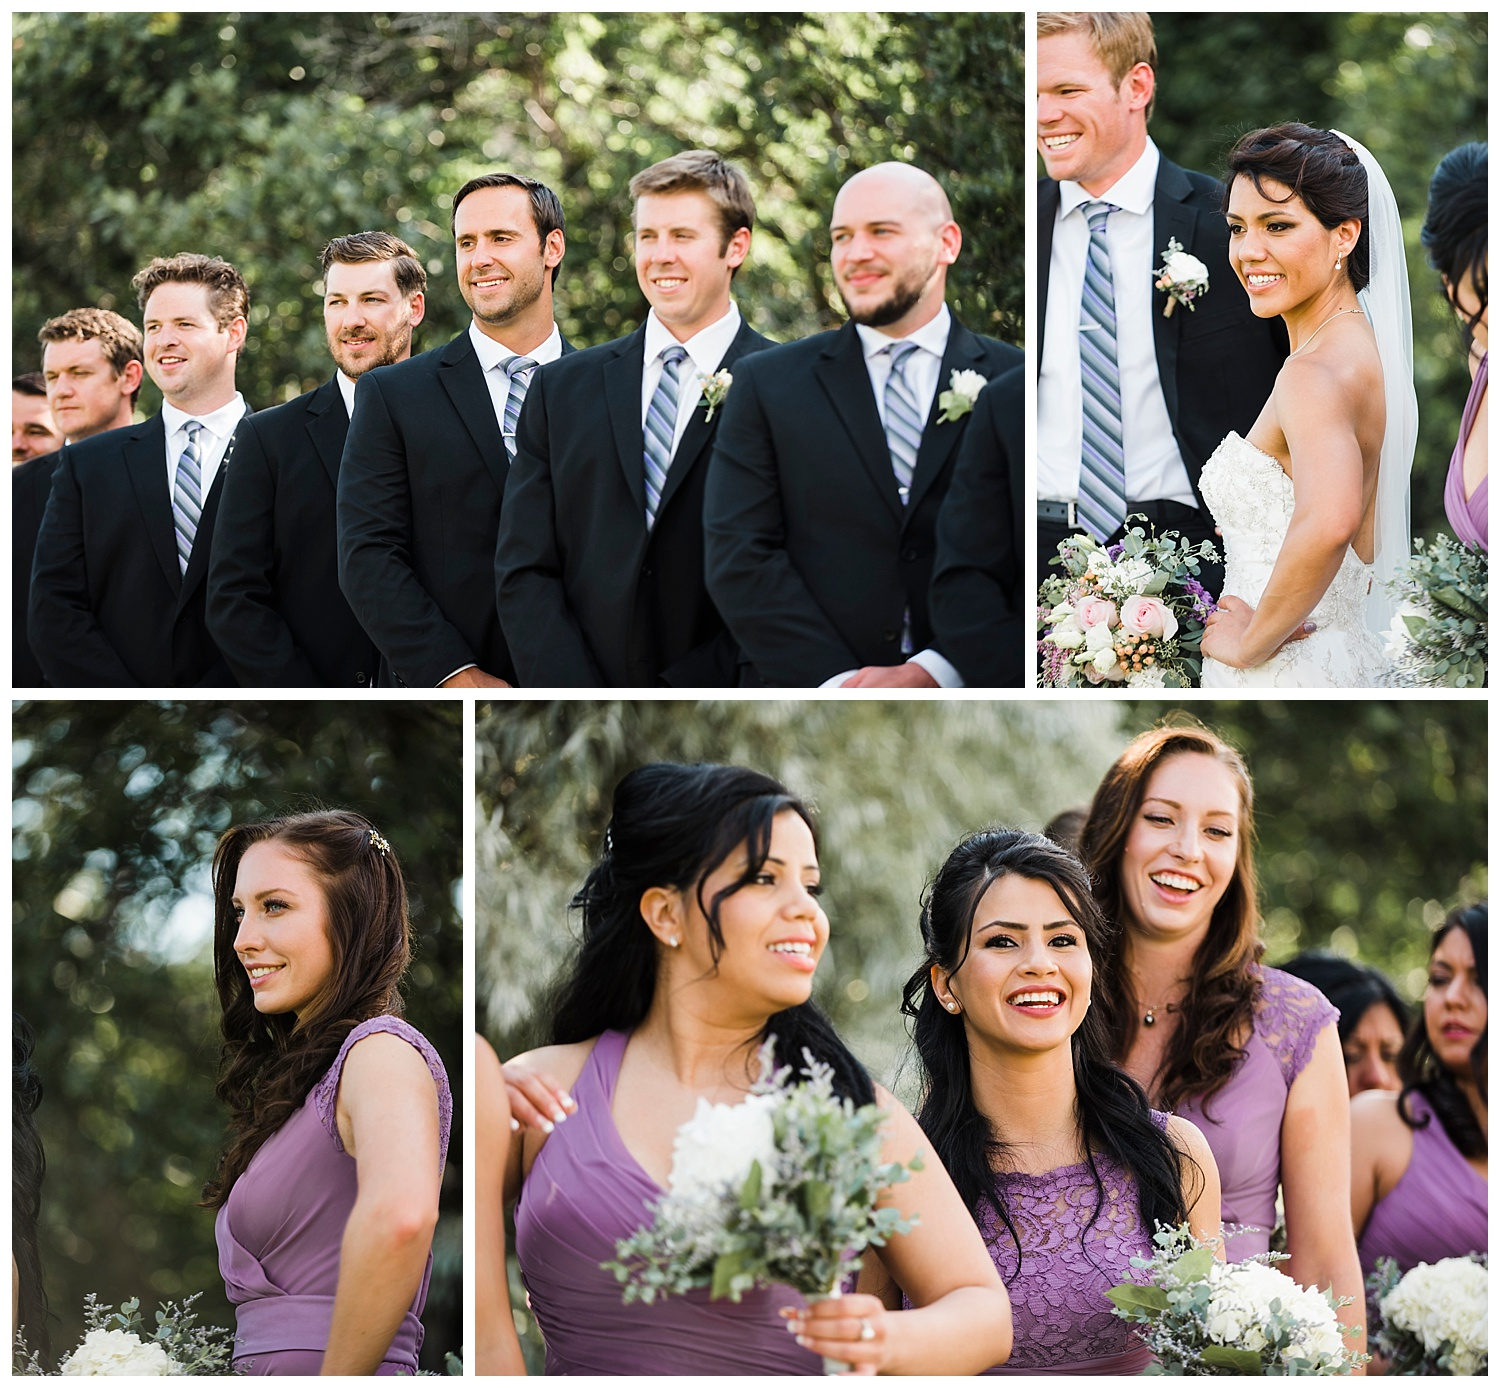 Arrowhead_Golf_Course_Wedding_Littleton_Colorado_Apollo_Fields_143.jpg